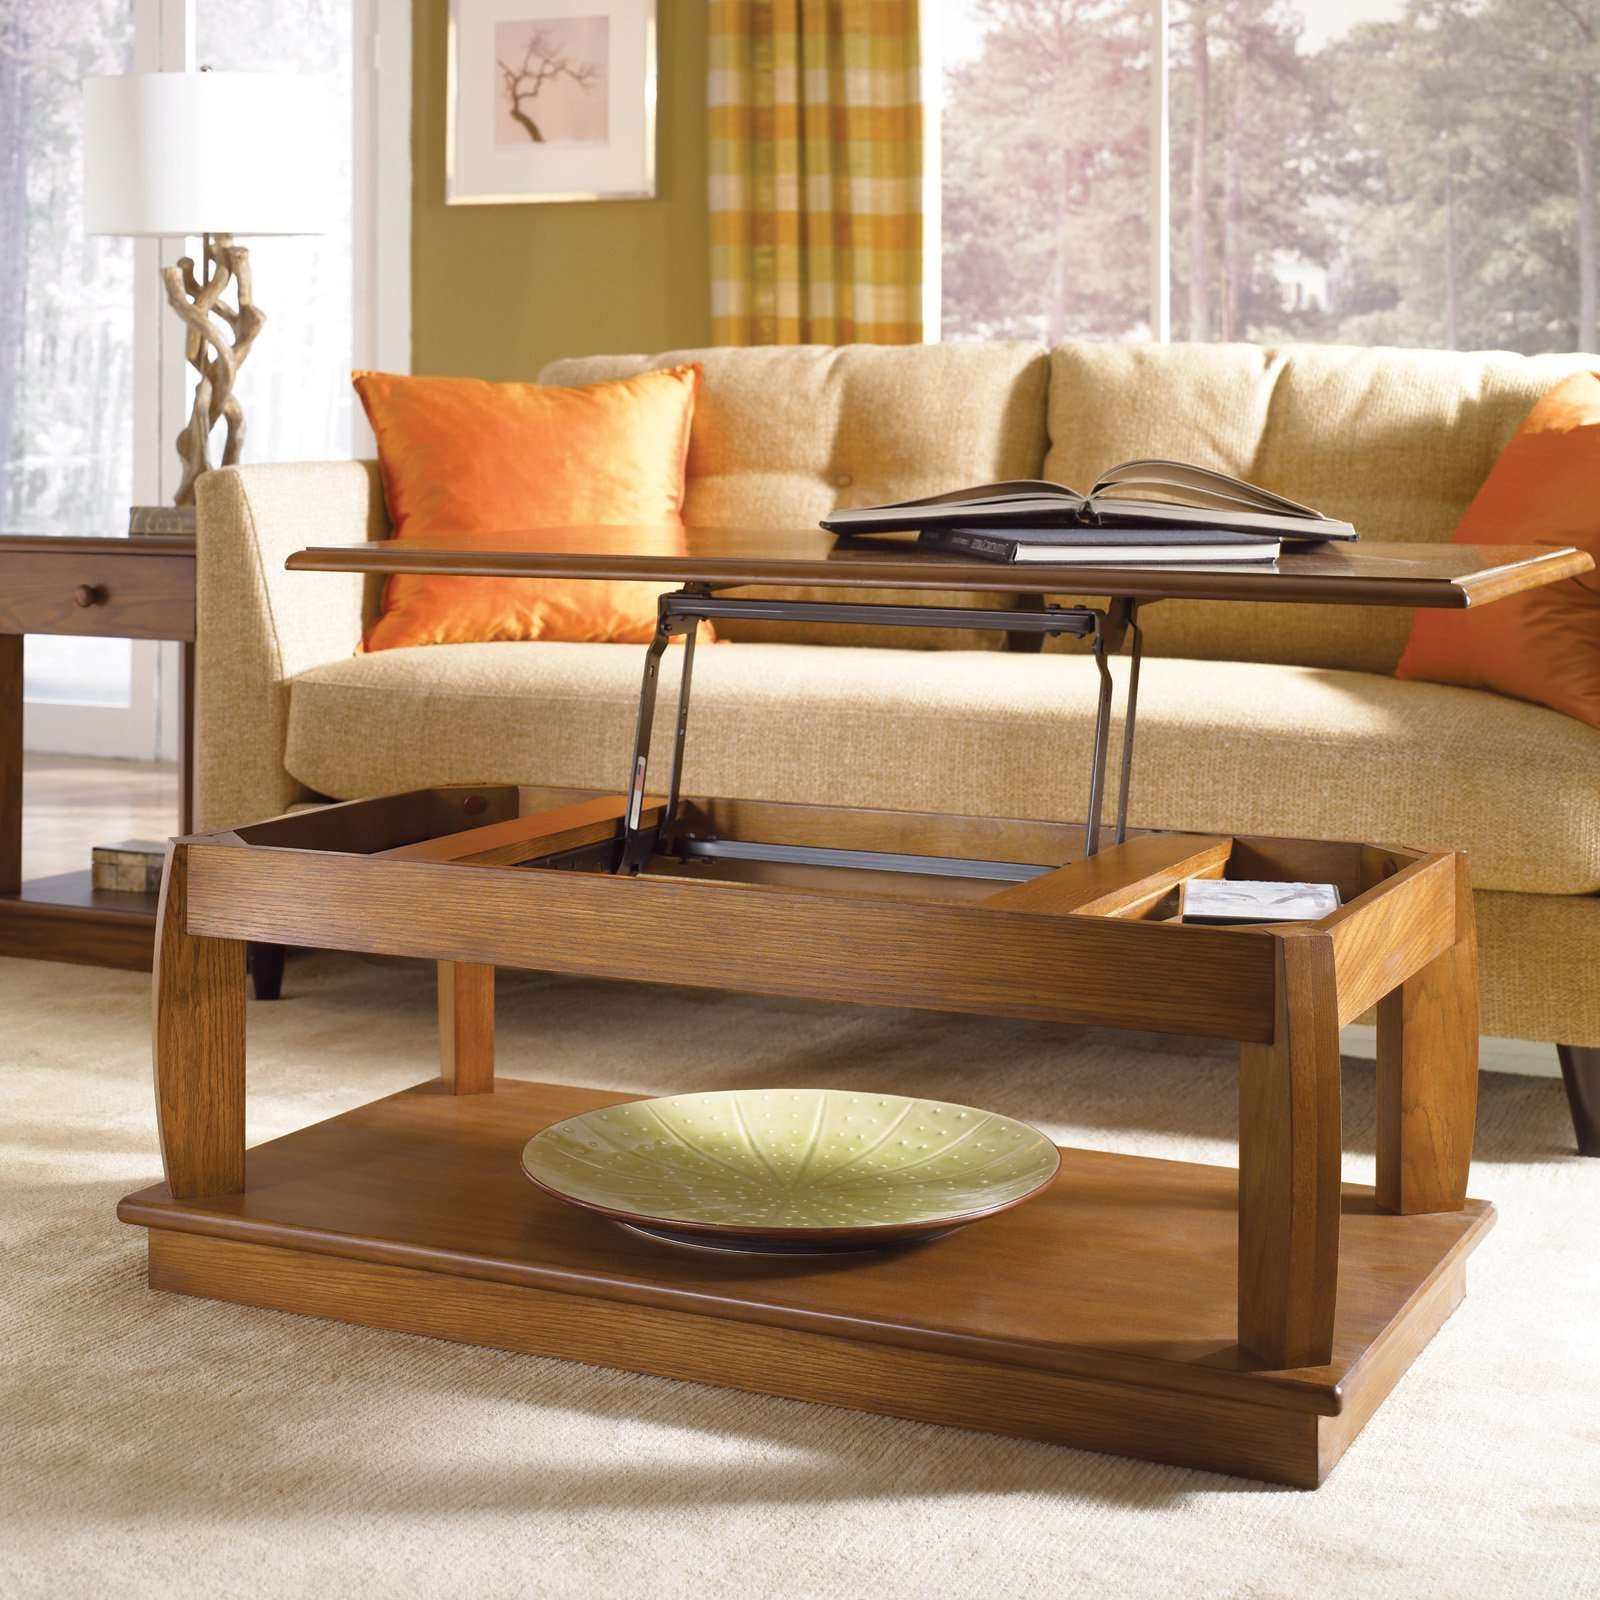 Latest Beige Coffee Tables With Regard To Interior : Comfortable Apartment Living Room Decorating Ideas With (View 9 of 20)